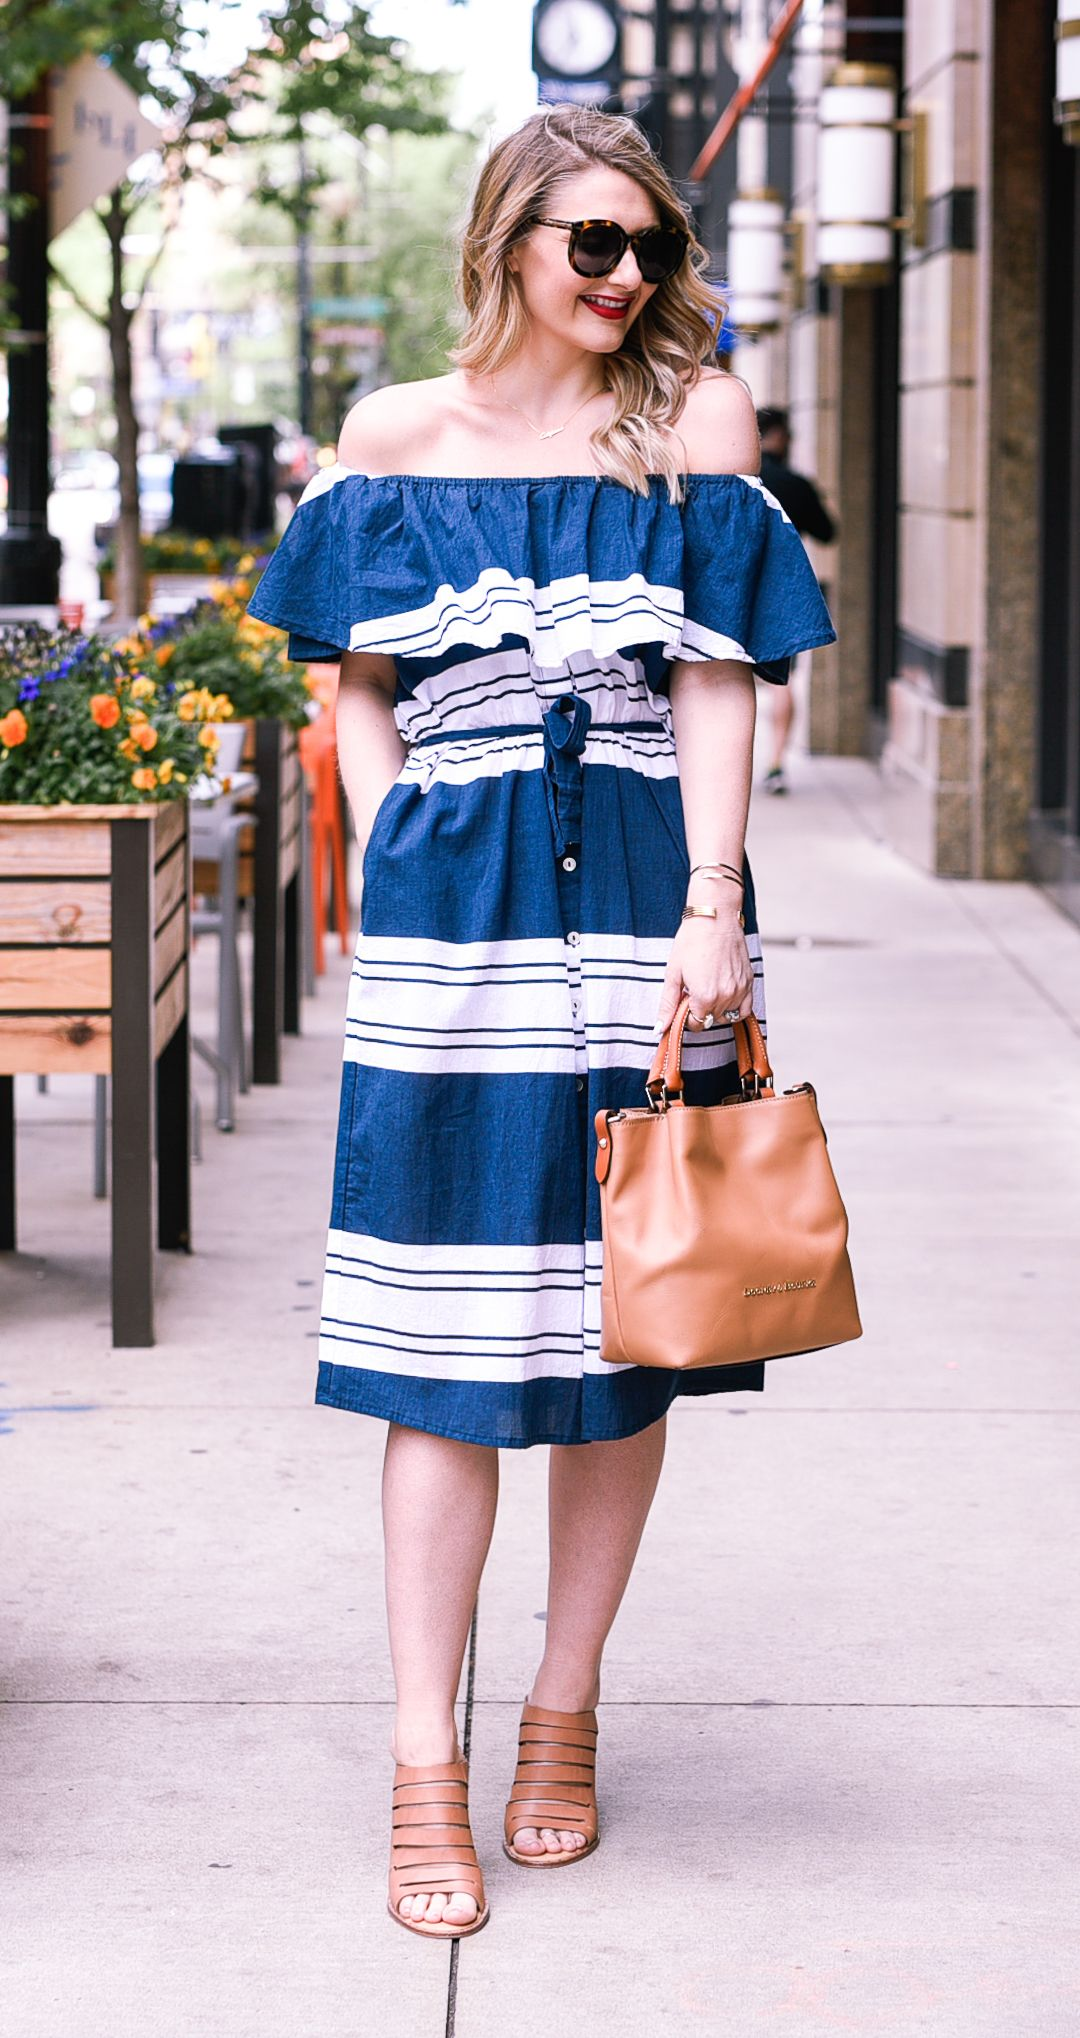 A Dress A Day Dinner On A Patio Dress Day 13 Visions Of Vogue Fashion Summer Fashion Latest Summer Fashion Trends [ 2038 x 1080 Pixel ]